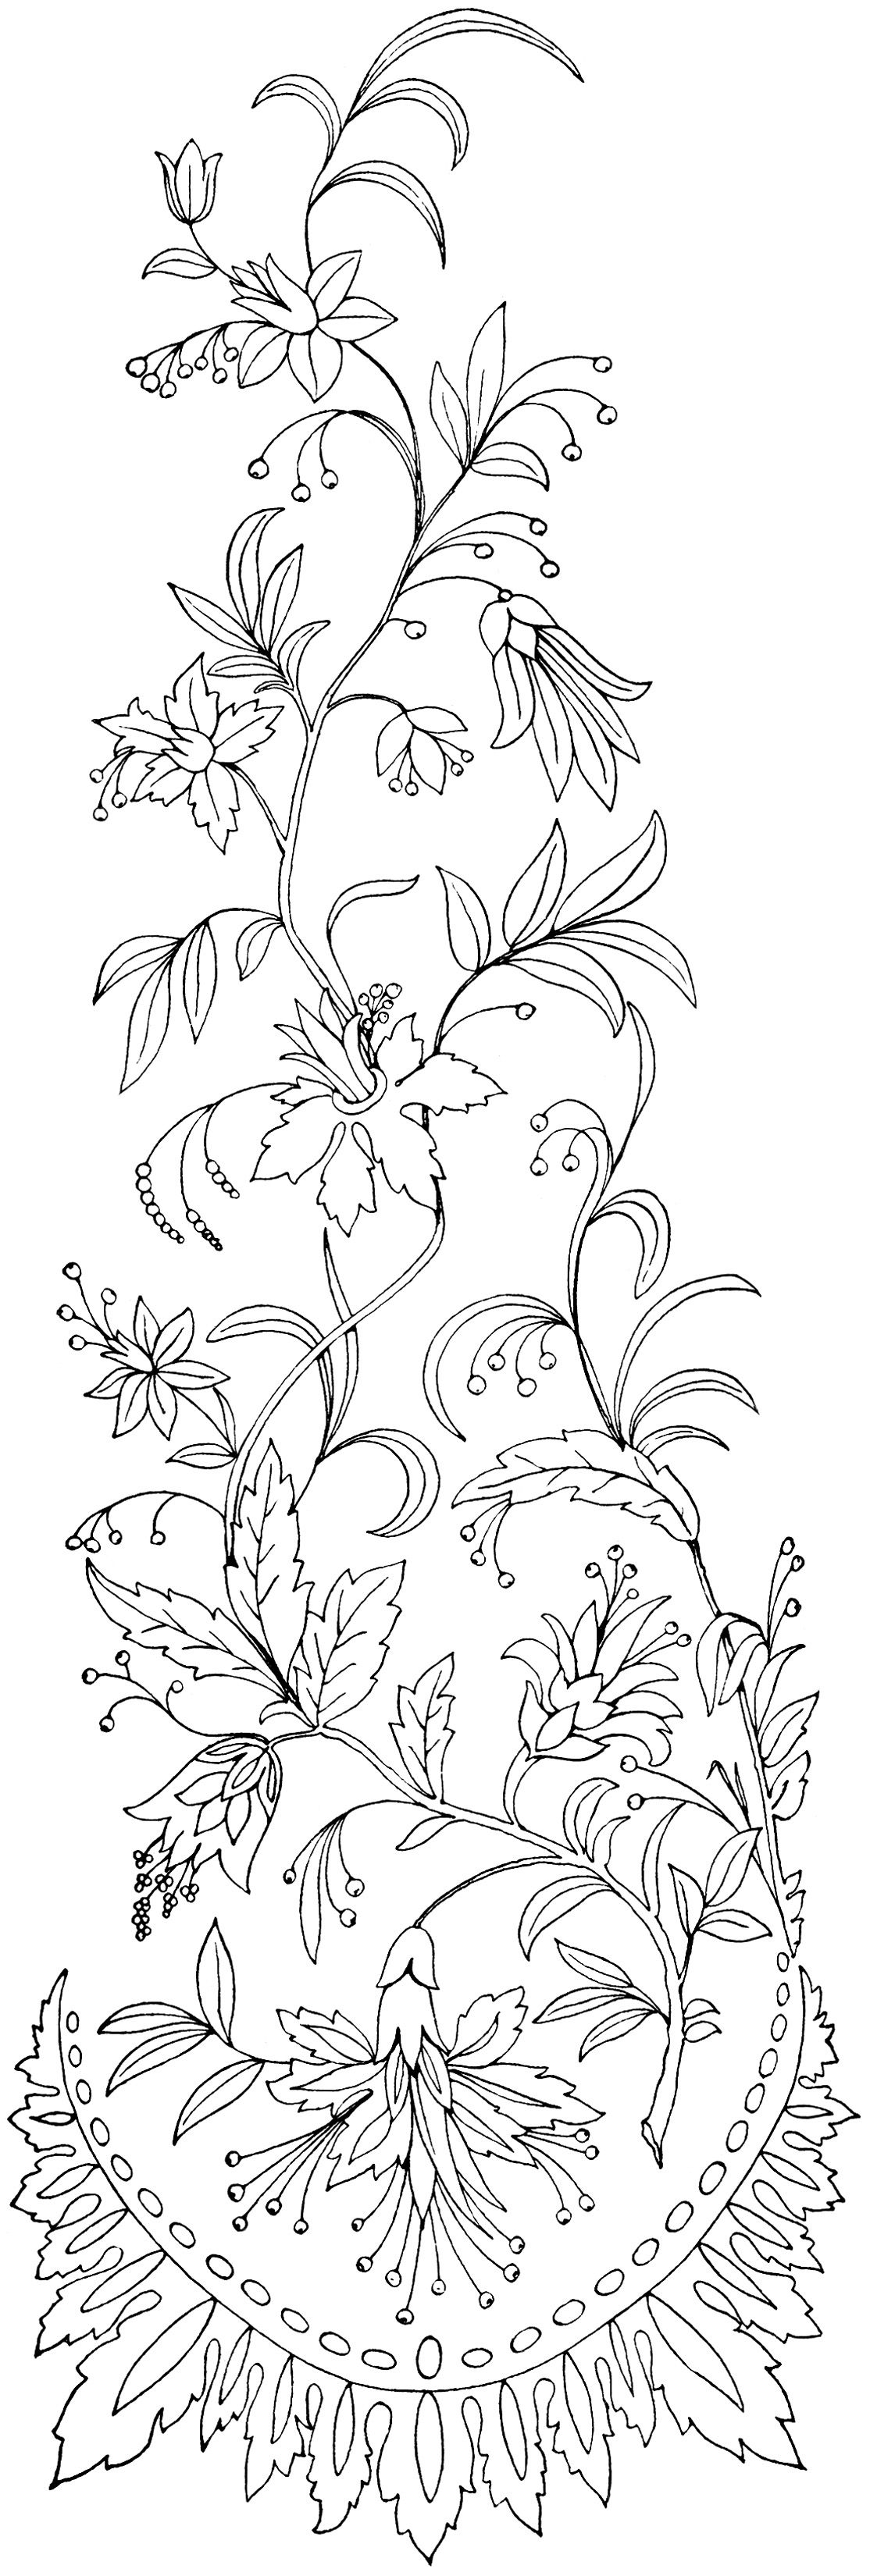 Free printable designs this lovely vintage embroidery